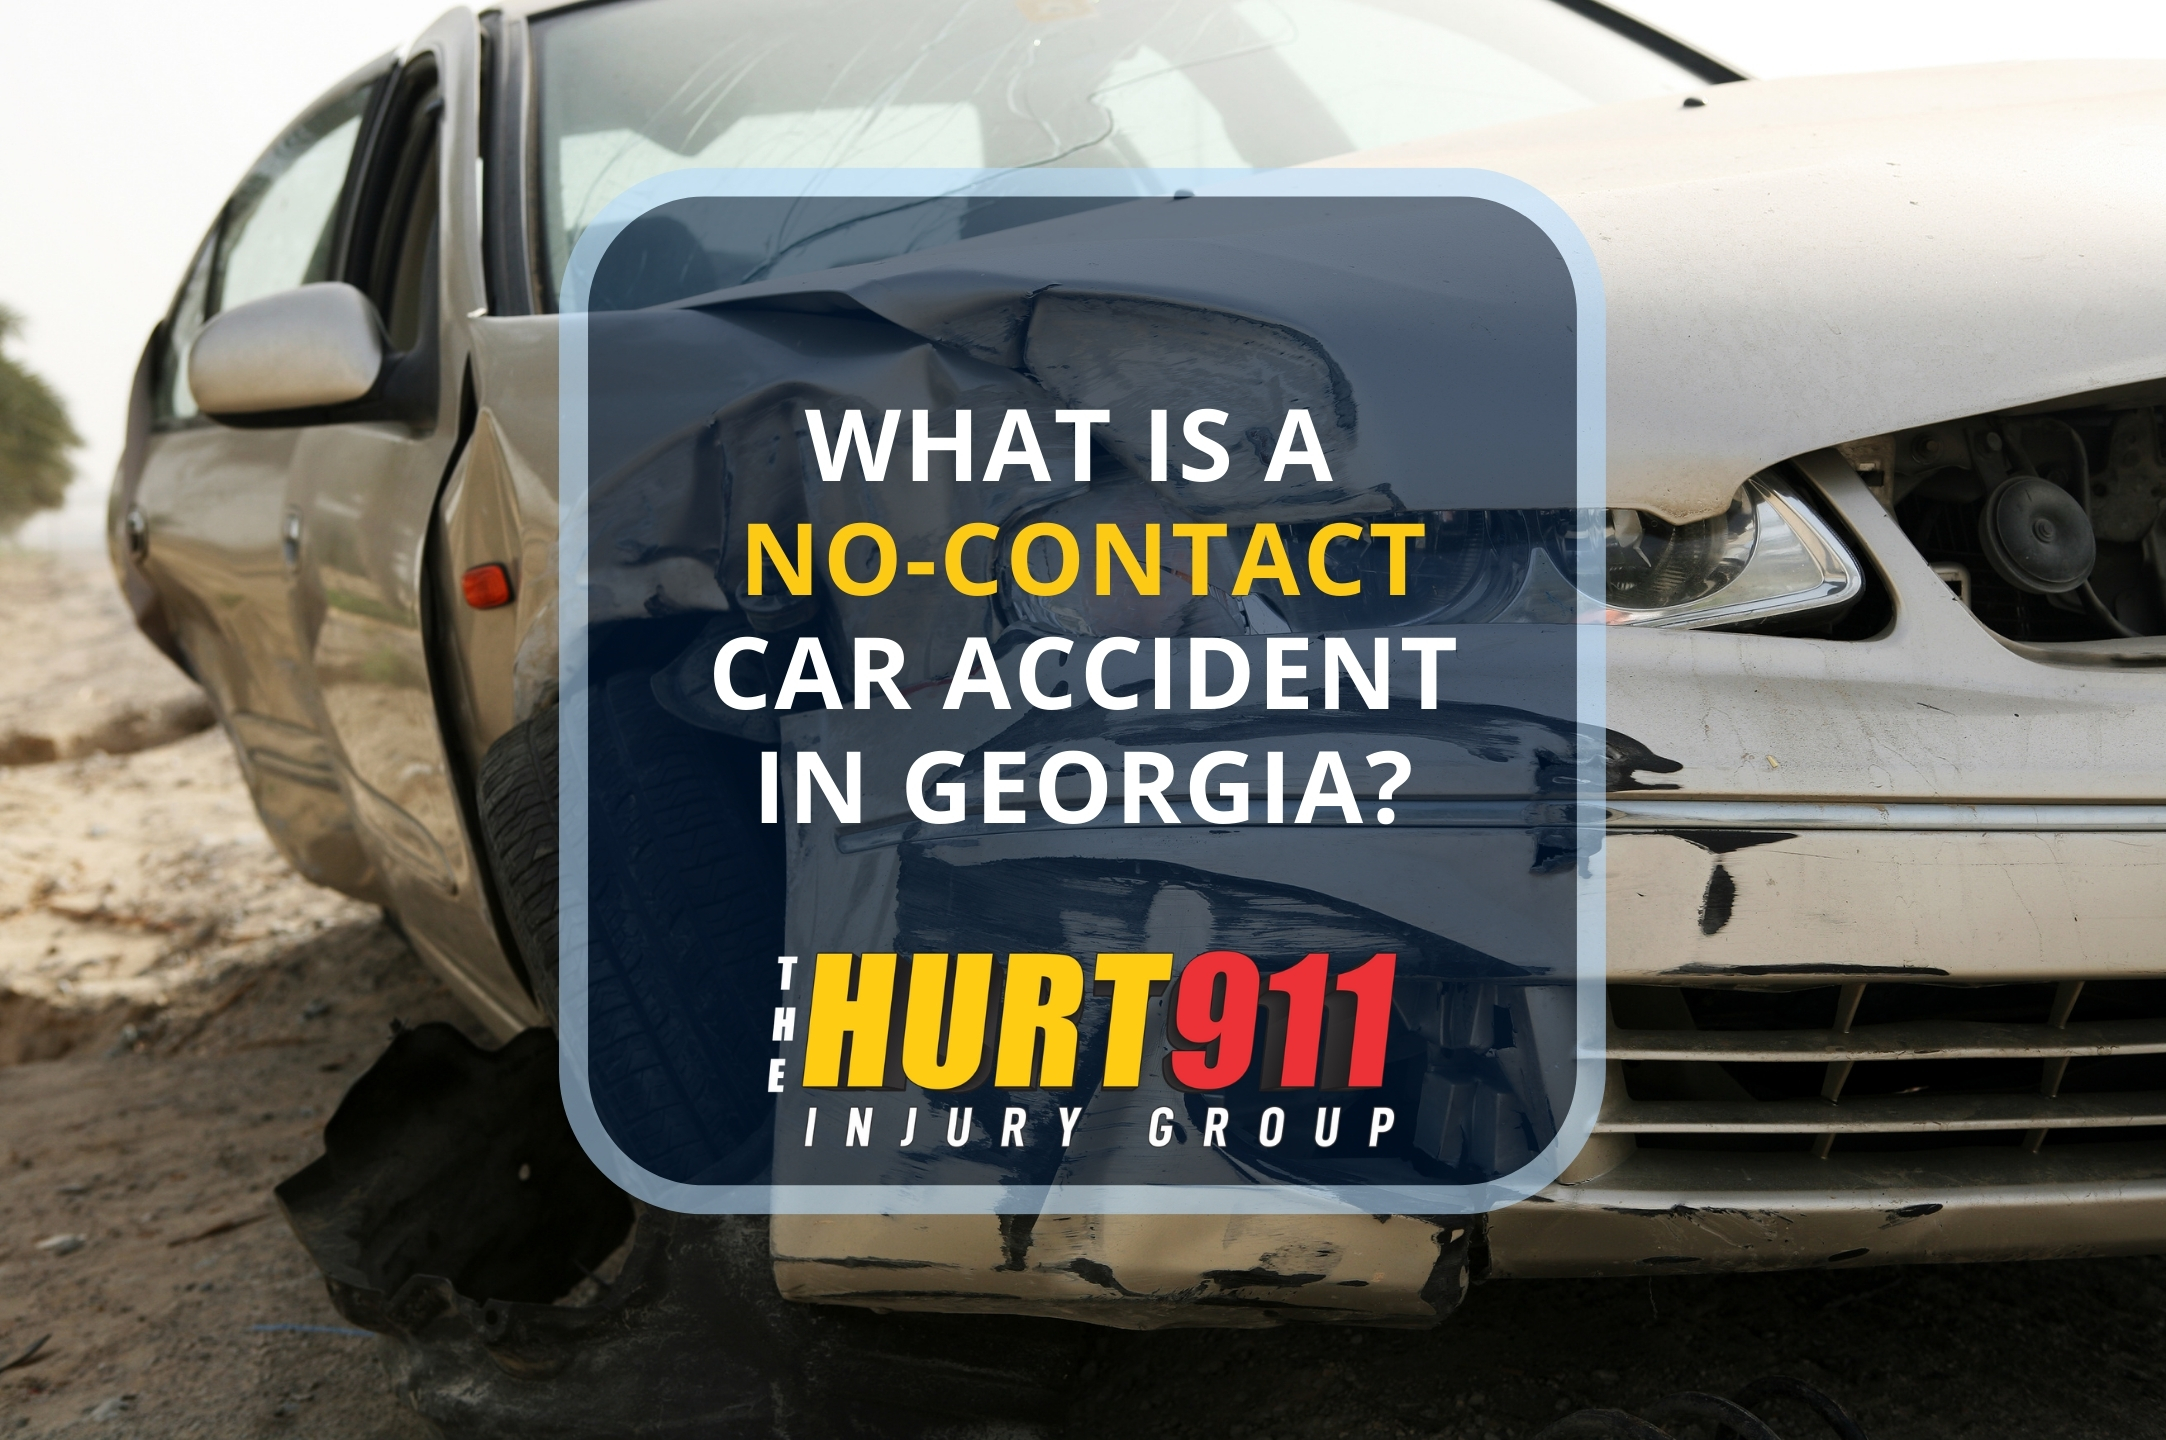 What Is a No-Contact Car Accident in Georgia?